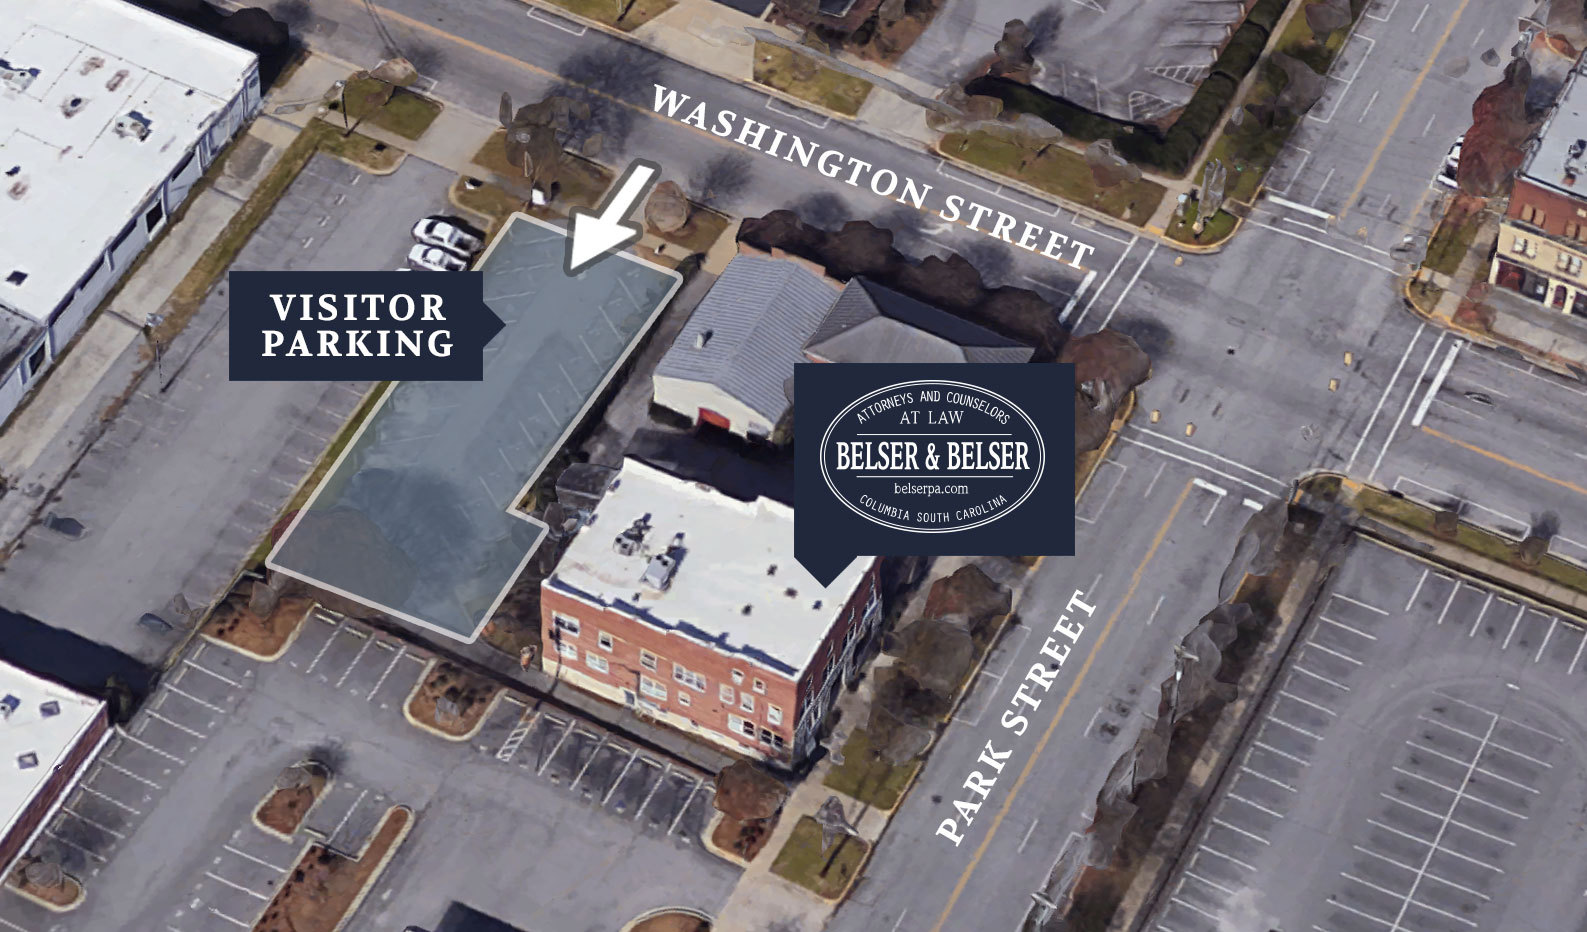 Belser & Belser Parking Map